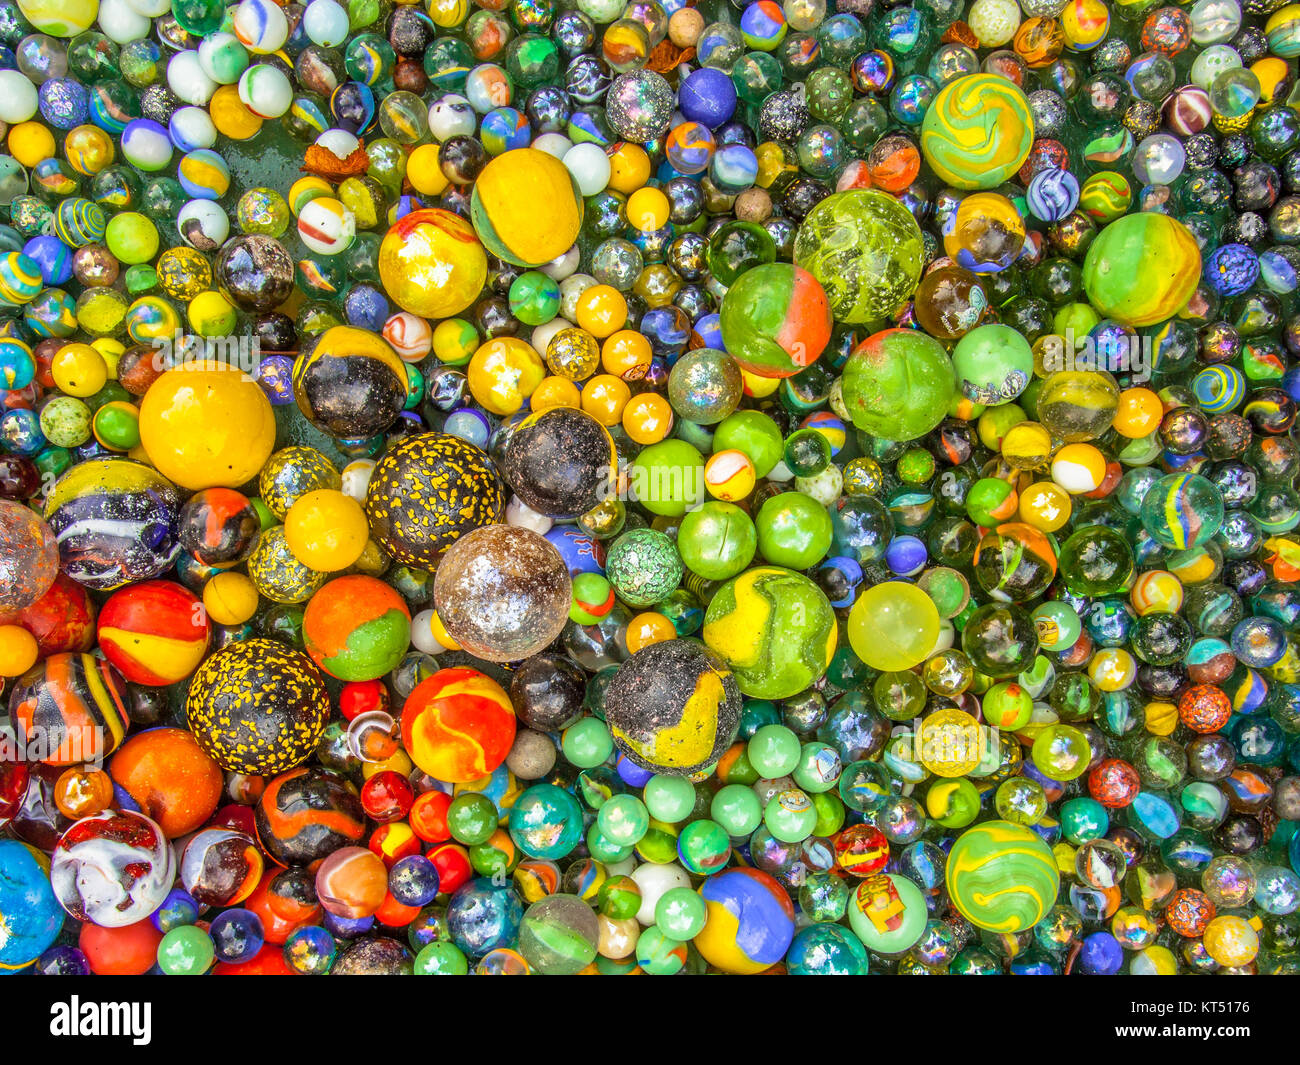 Glass marbles of different sizes in a color pattern - Stock Image